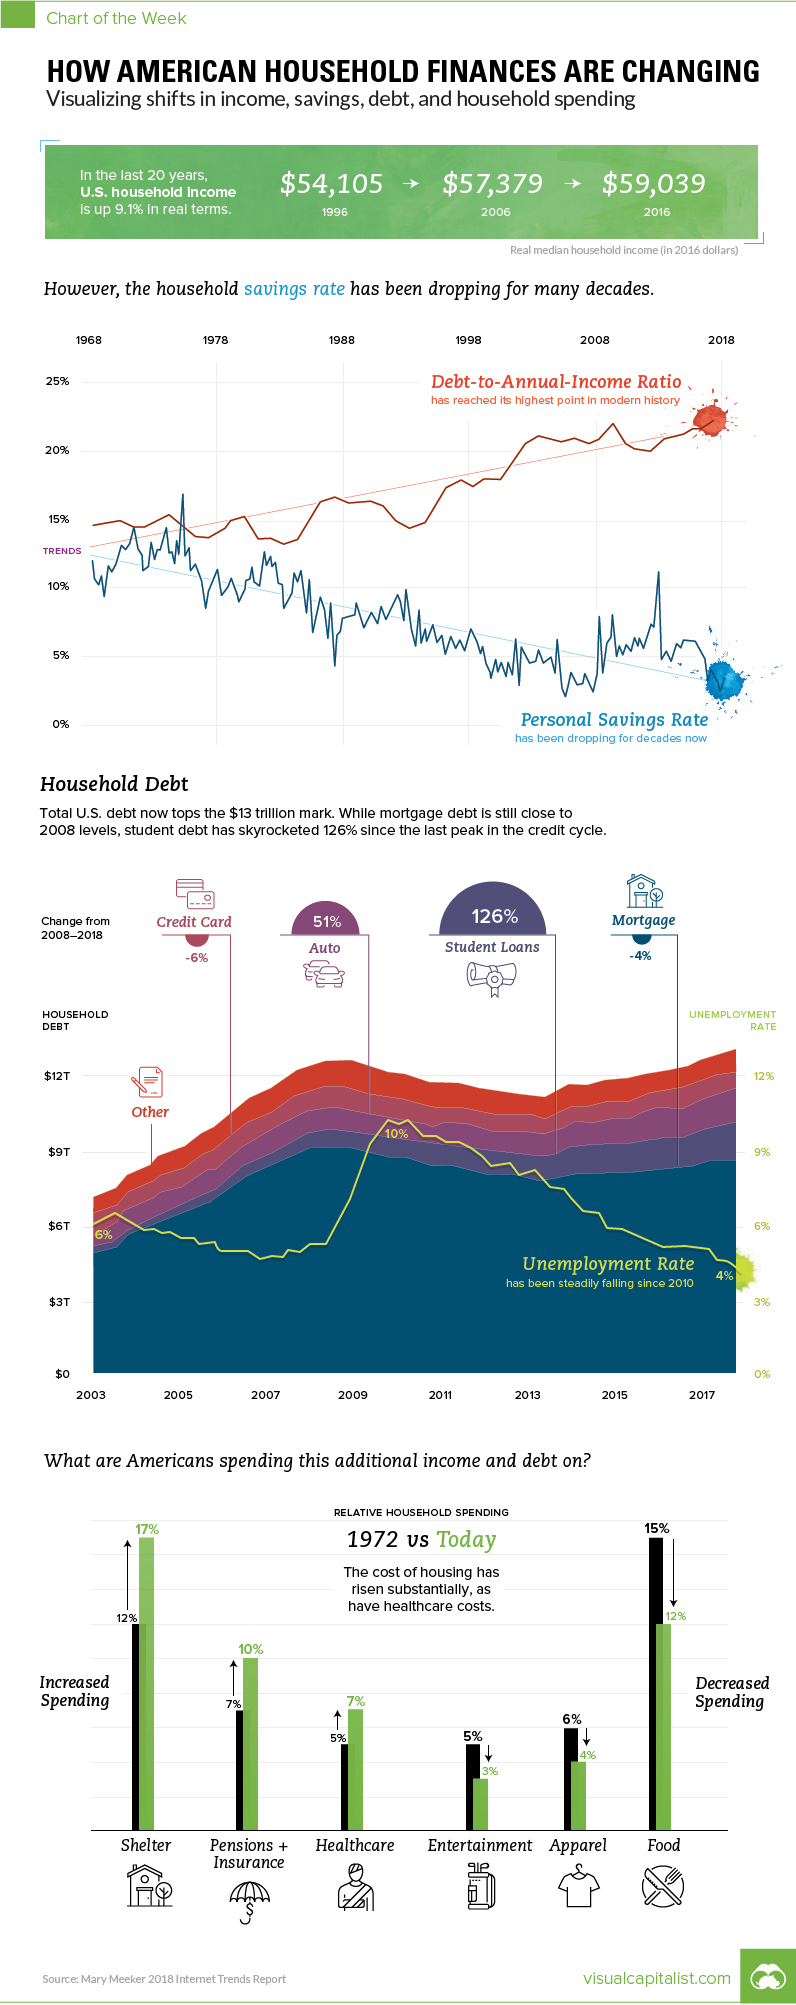 In Charts: How American Household Finances are Changing